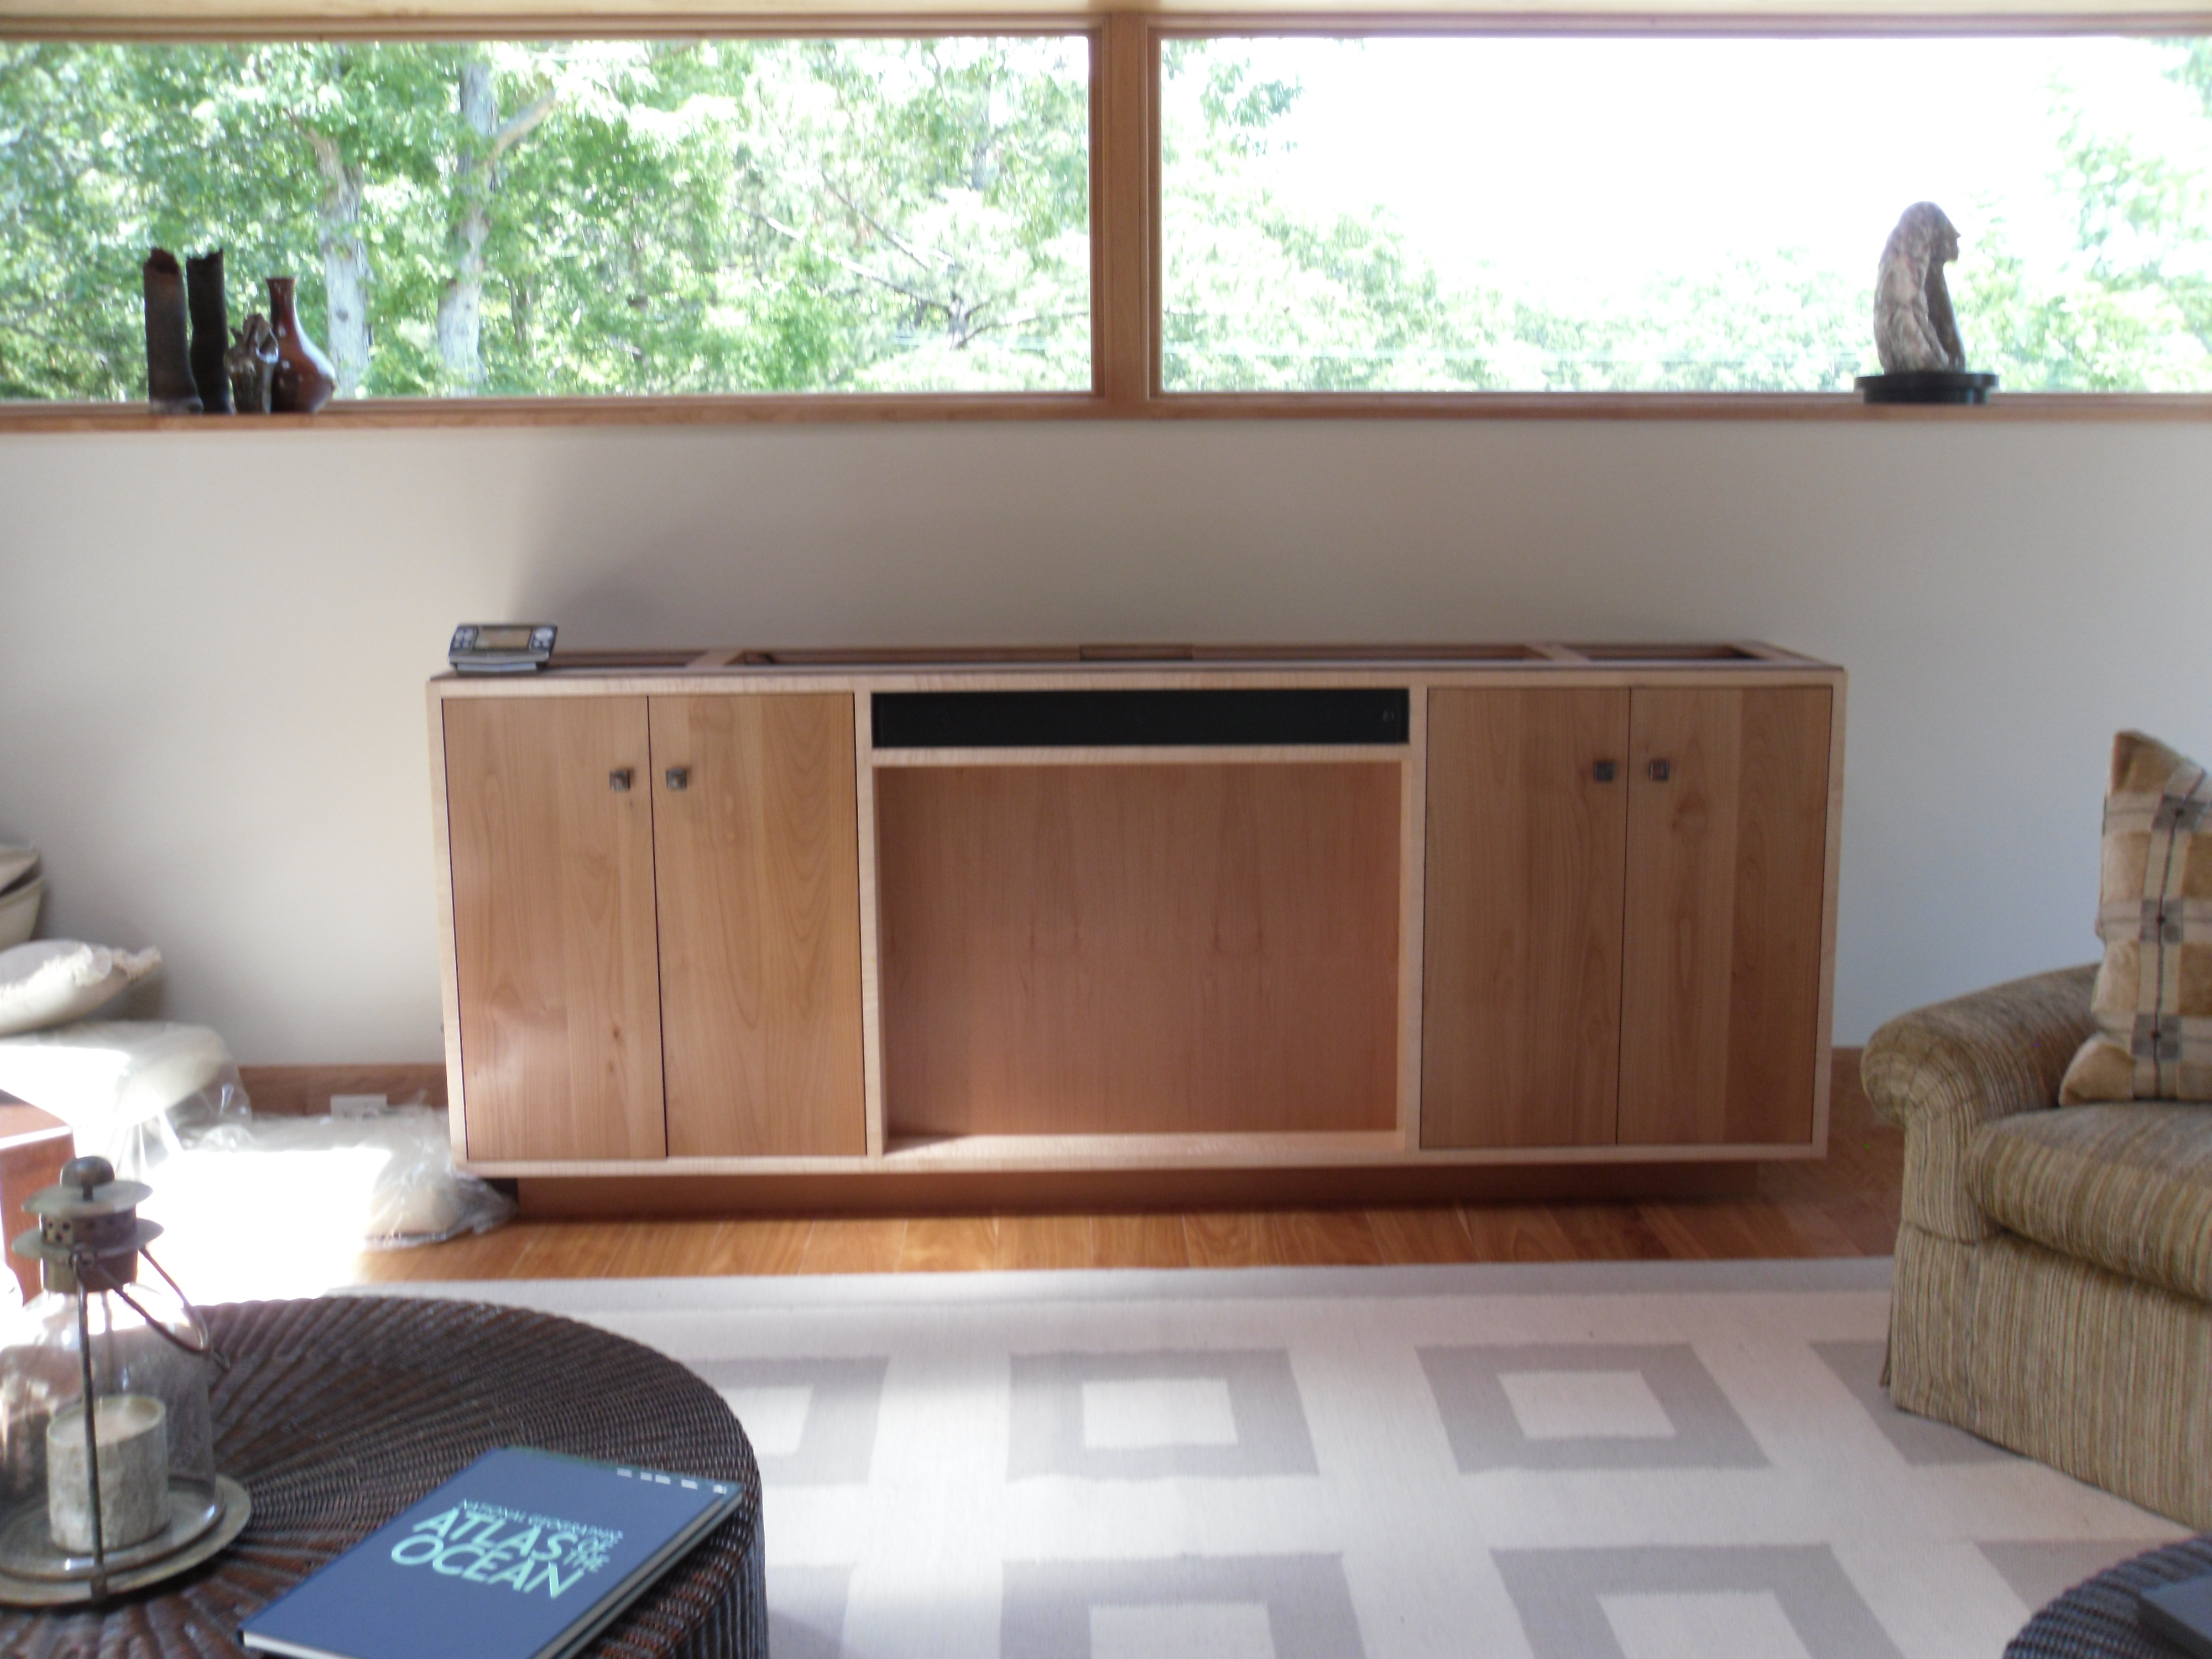 Lift Cabinet for TV | Marion, Mattapoisett and New Bedford